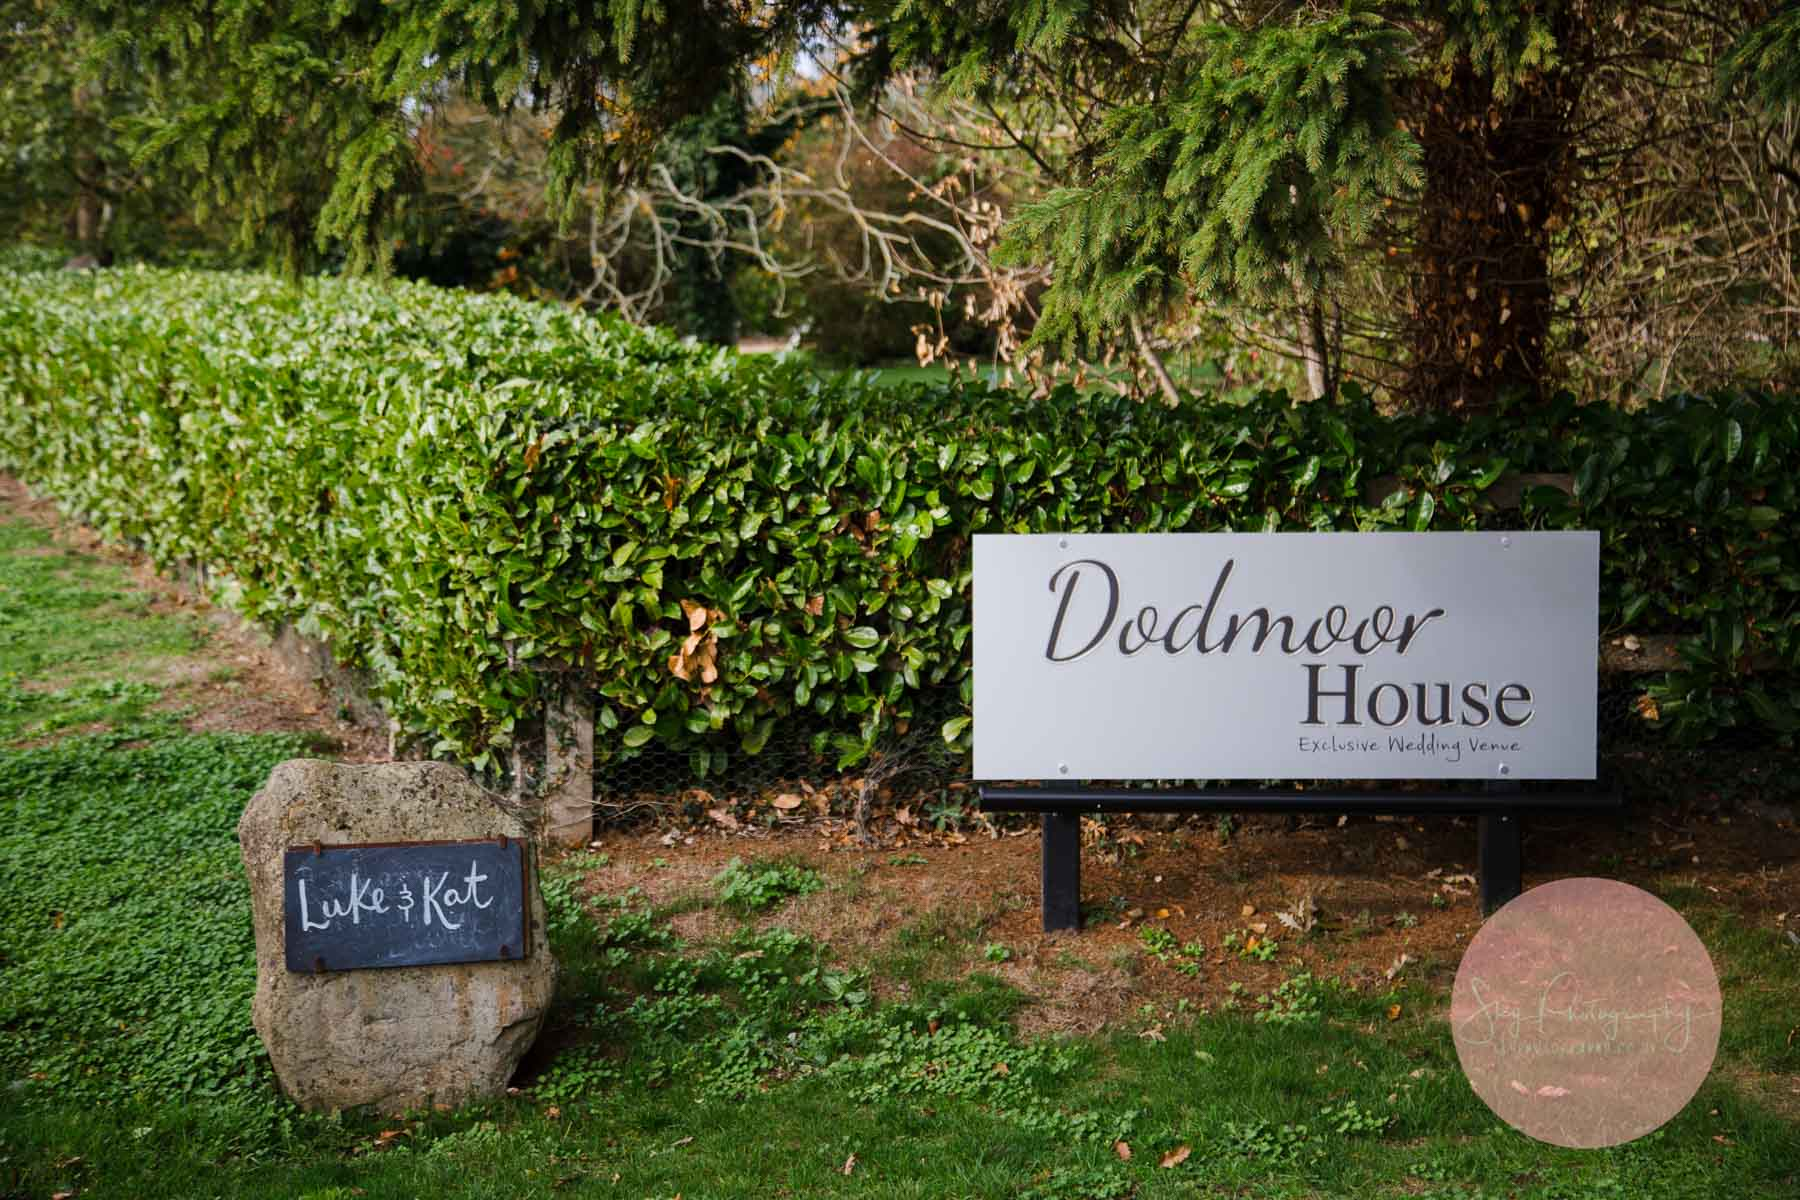 picture of Dodmoor house wedding venue entrance signs